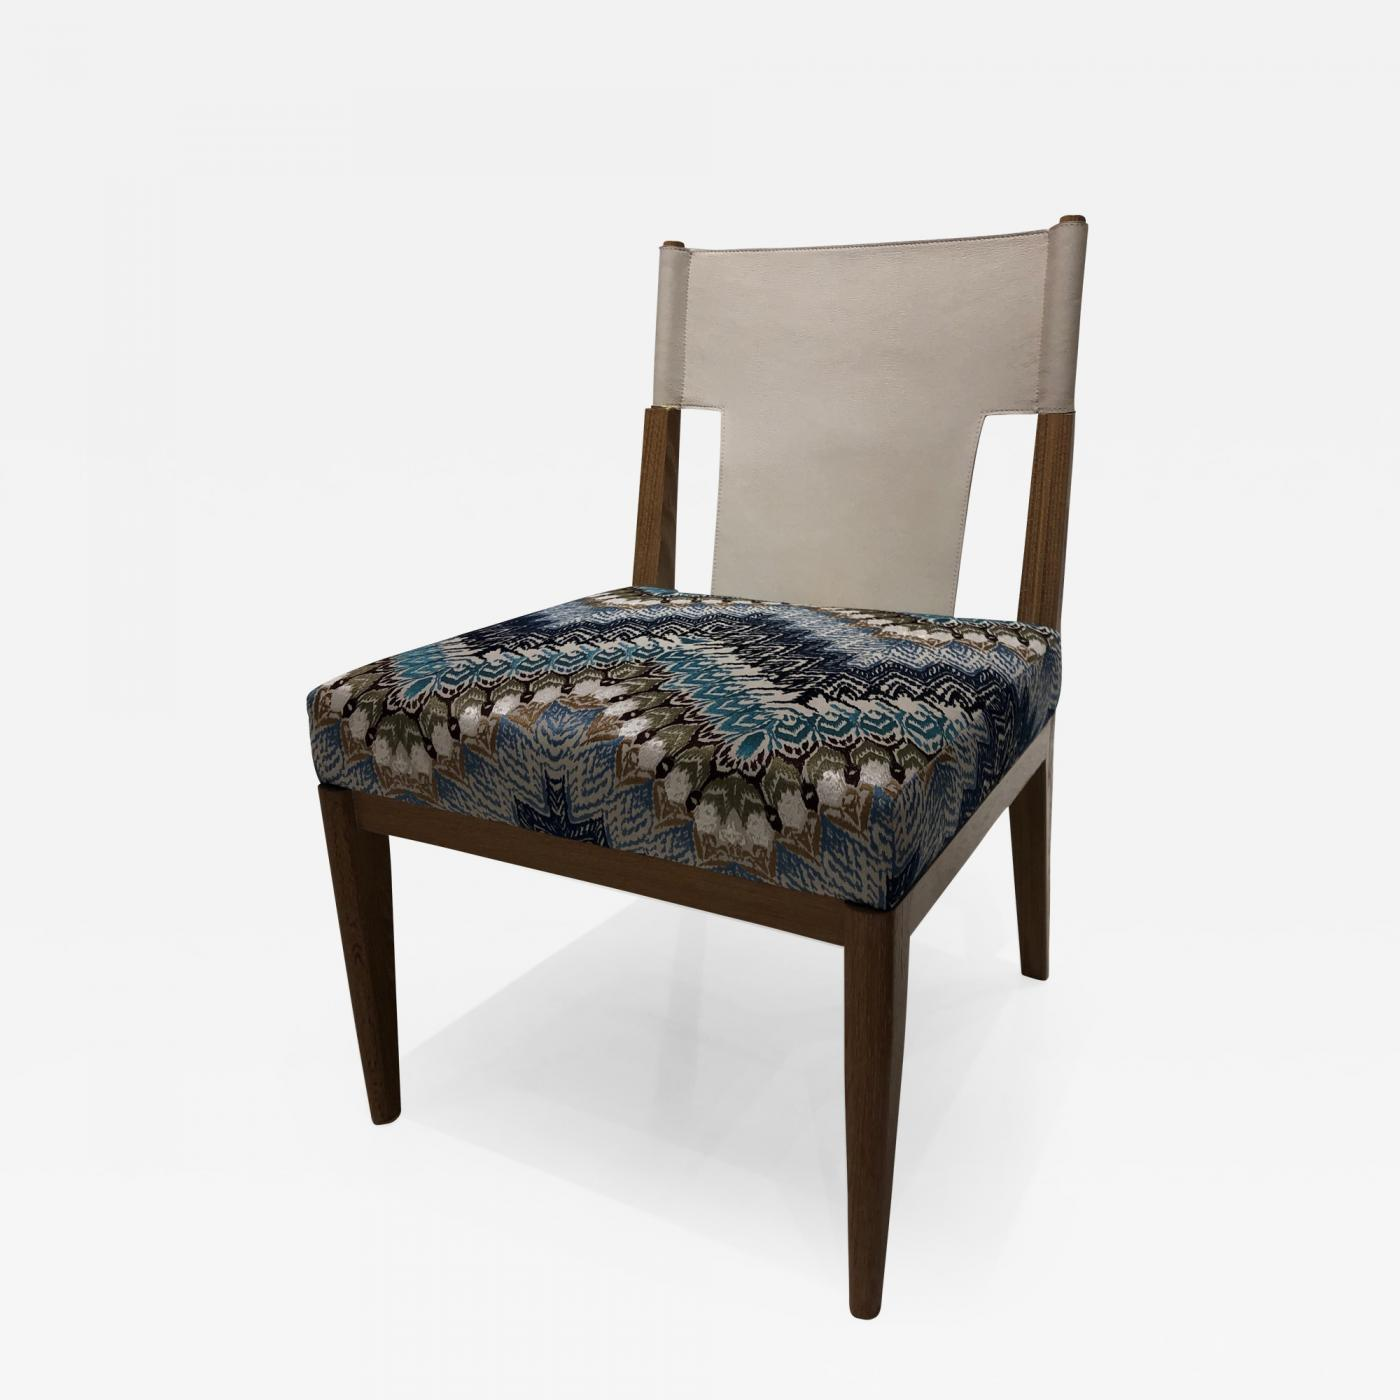 Stupendous Allan Switzer Solo 13 The Studio North Chair Caraccident5 Cool Chair Designs And Ideas Caraccident5Info